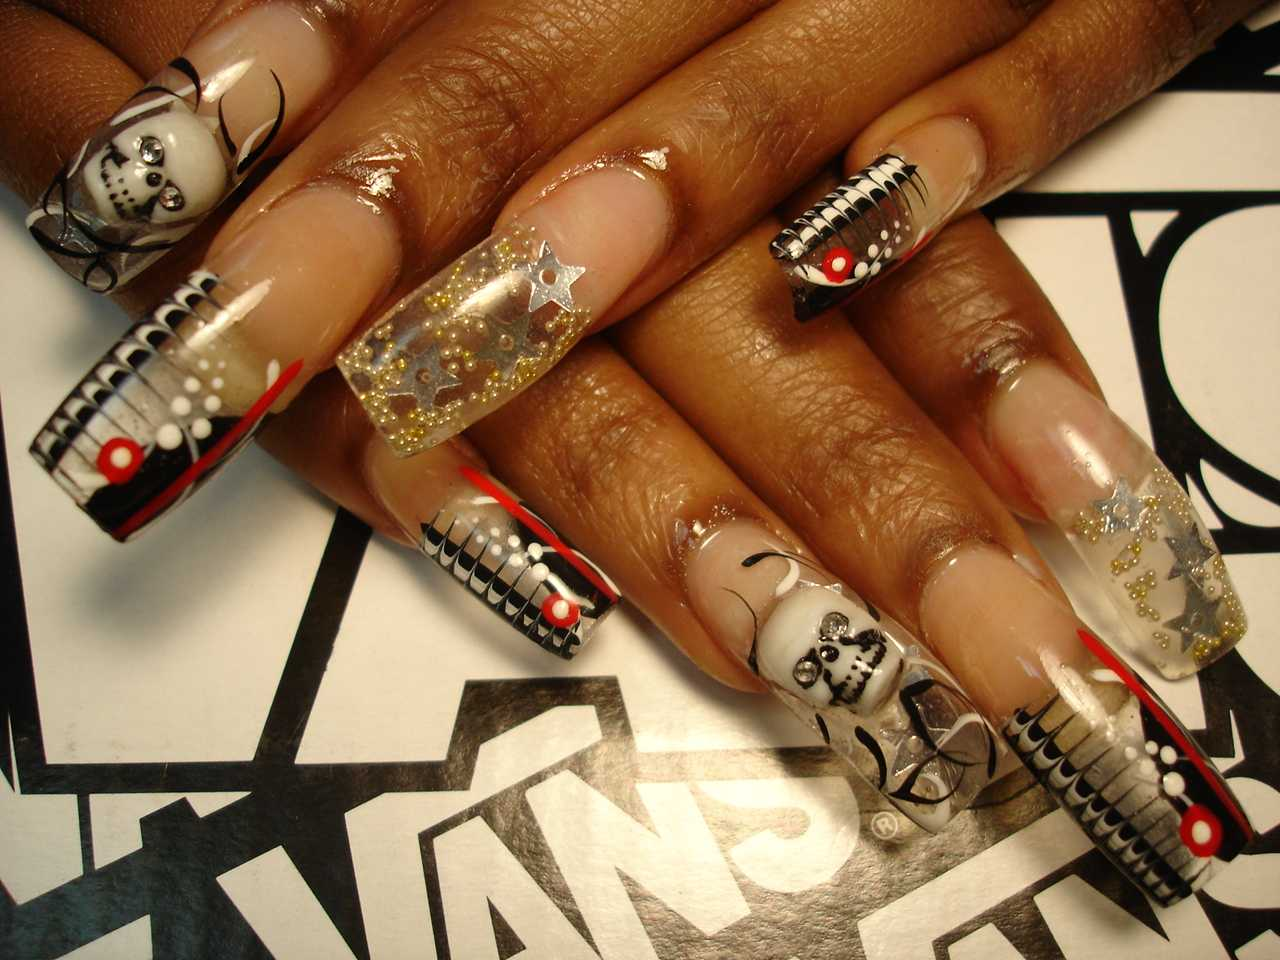 Health Implications Of Artificial Nails You Should Know - The Trent